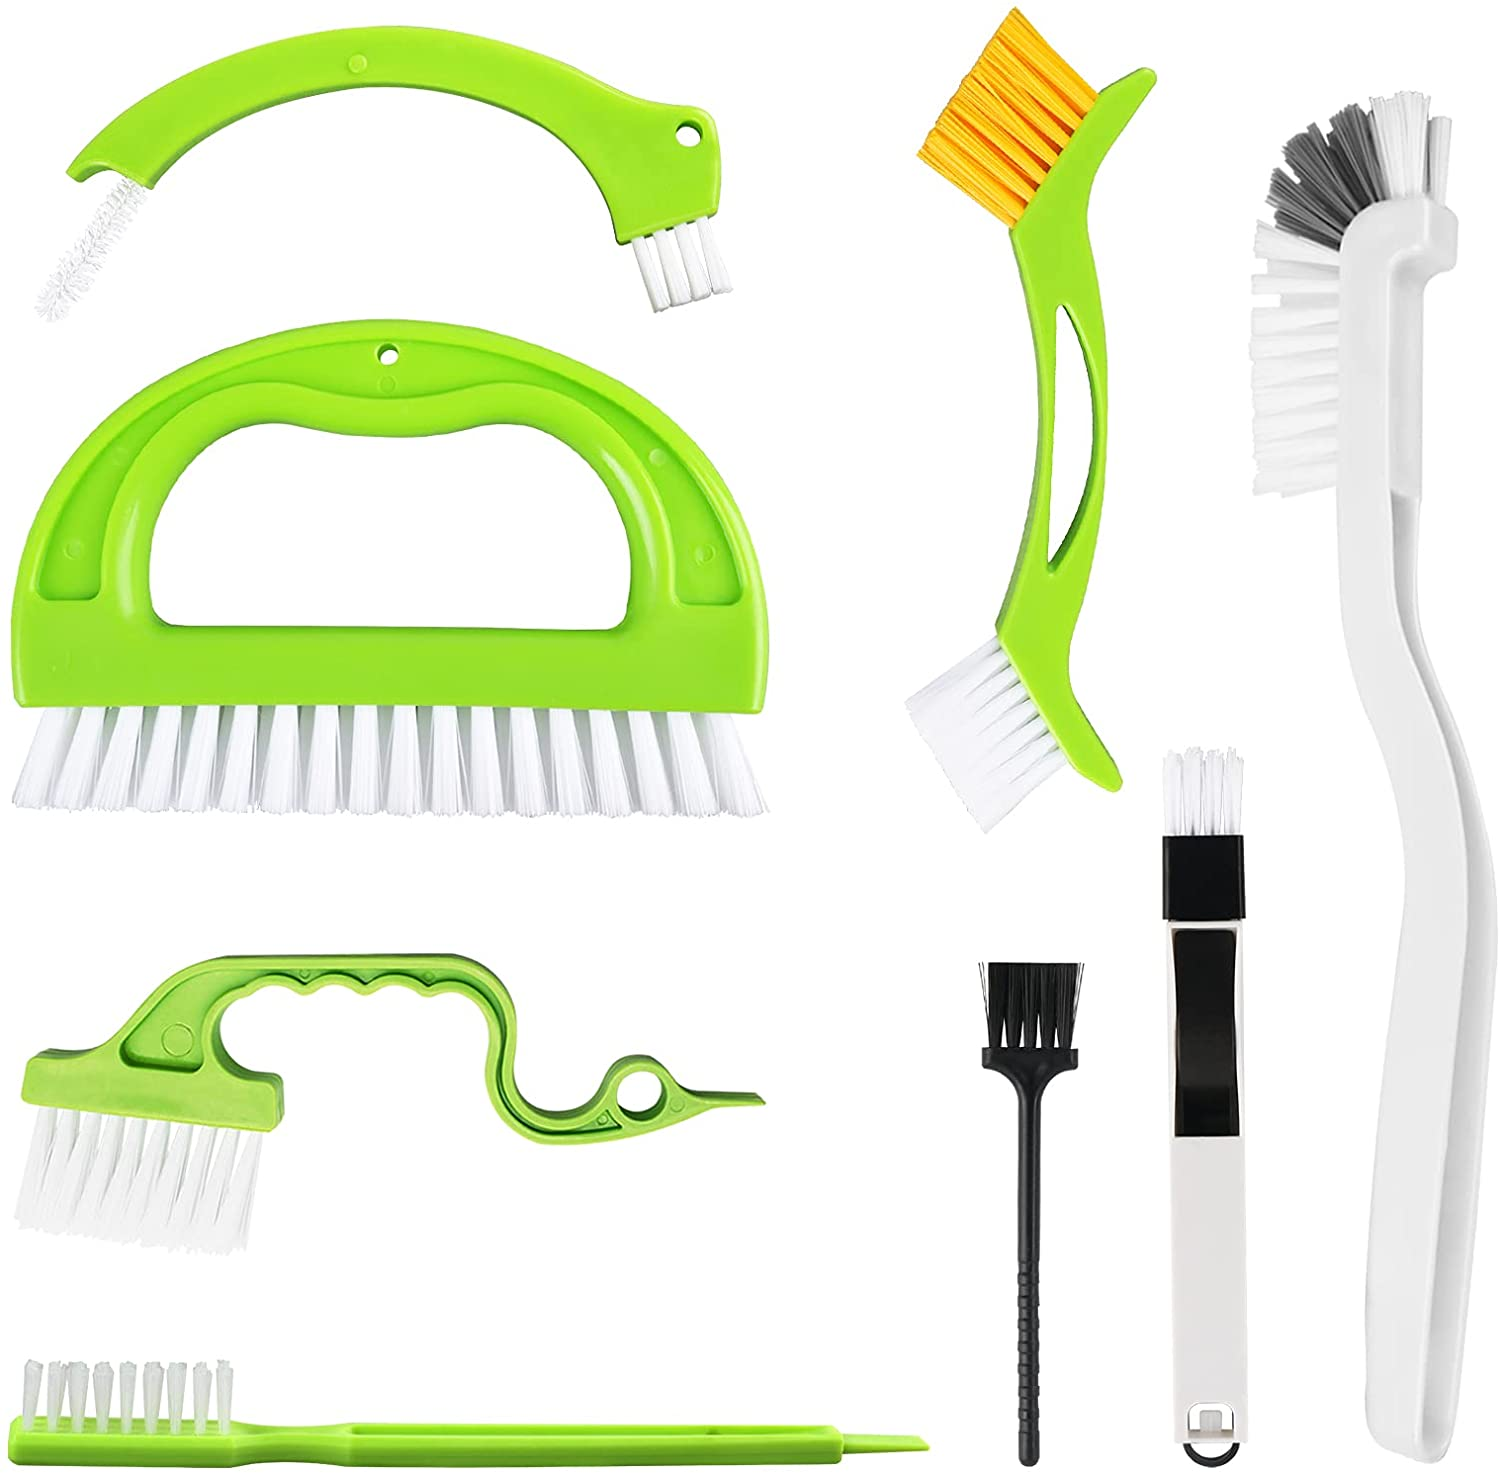 8 Pack Grout Cleaner Brush, Hand-held Groove Gap Cleaning Tools Tile Joint Scrub Brush to Deep Clean, Household Cleaning Brushes for Window Door Track, Stove Tops, Shower, Kitchen, Seams, Floor Lines